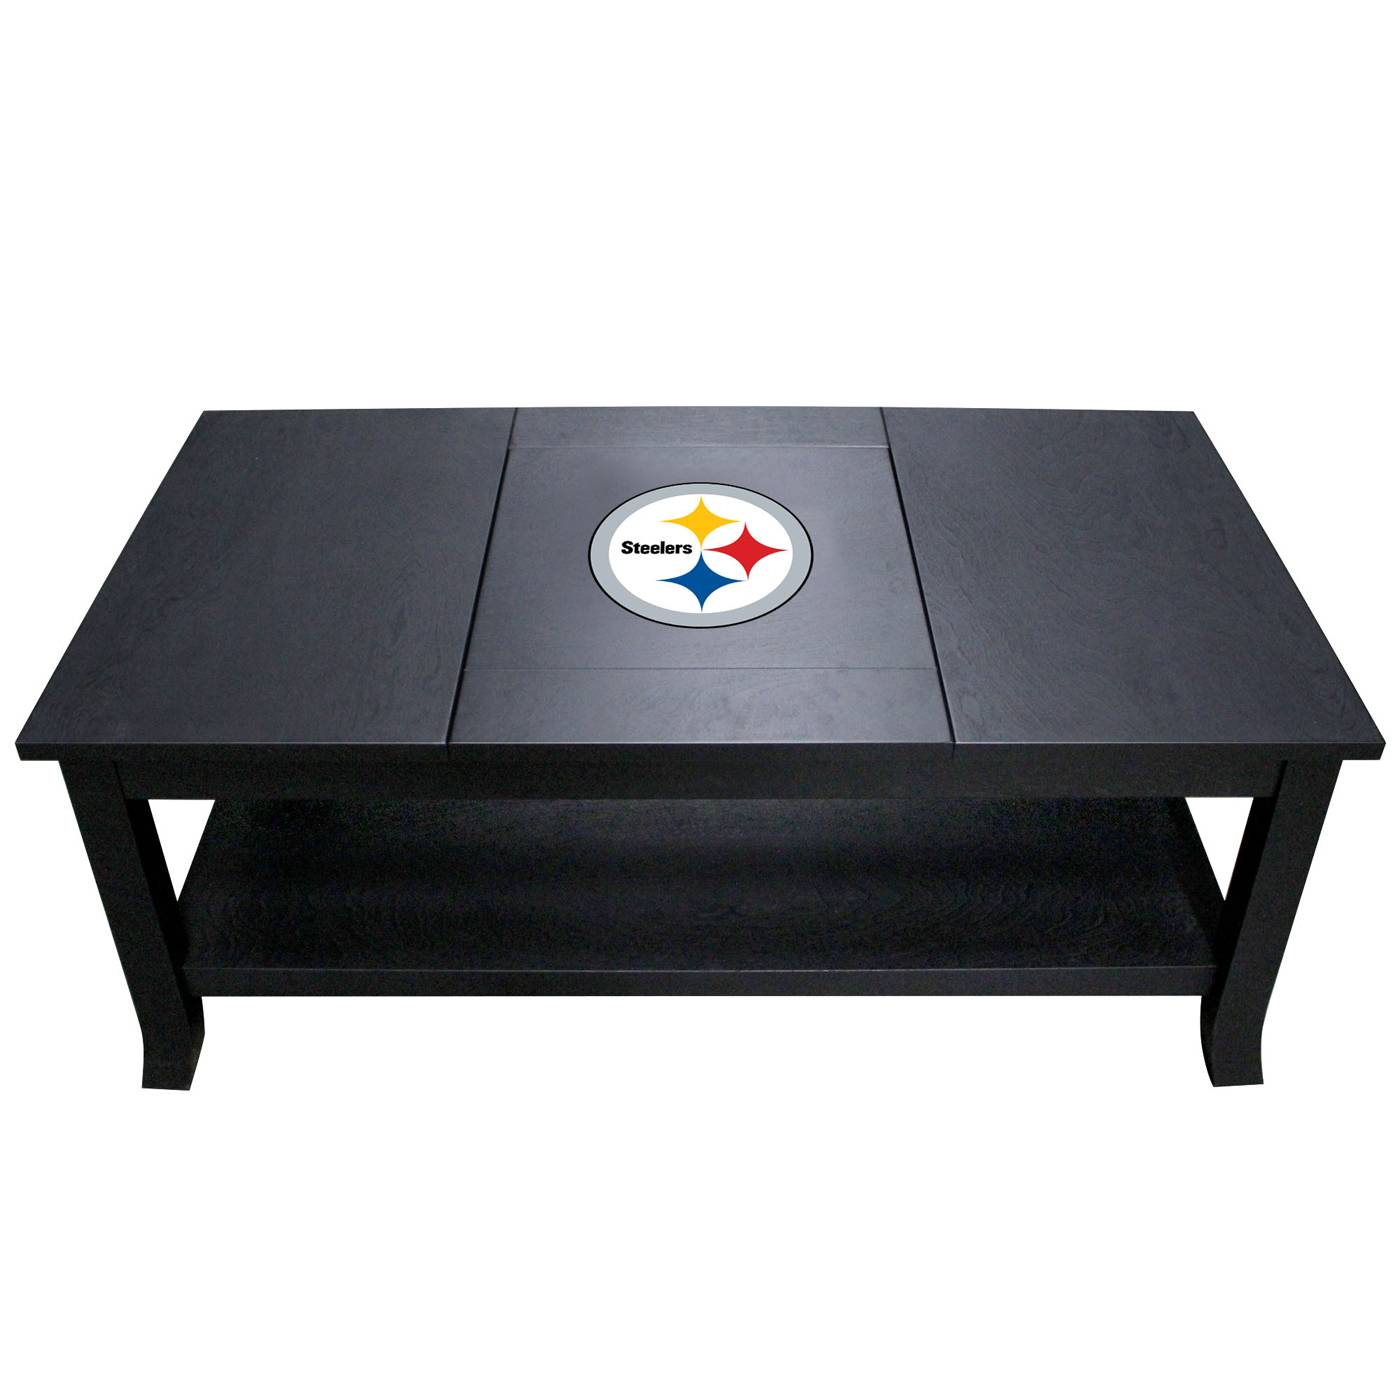 Pittsburgh Steelers NFL Coffee Table